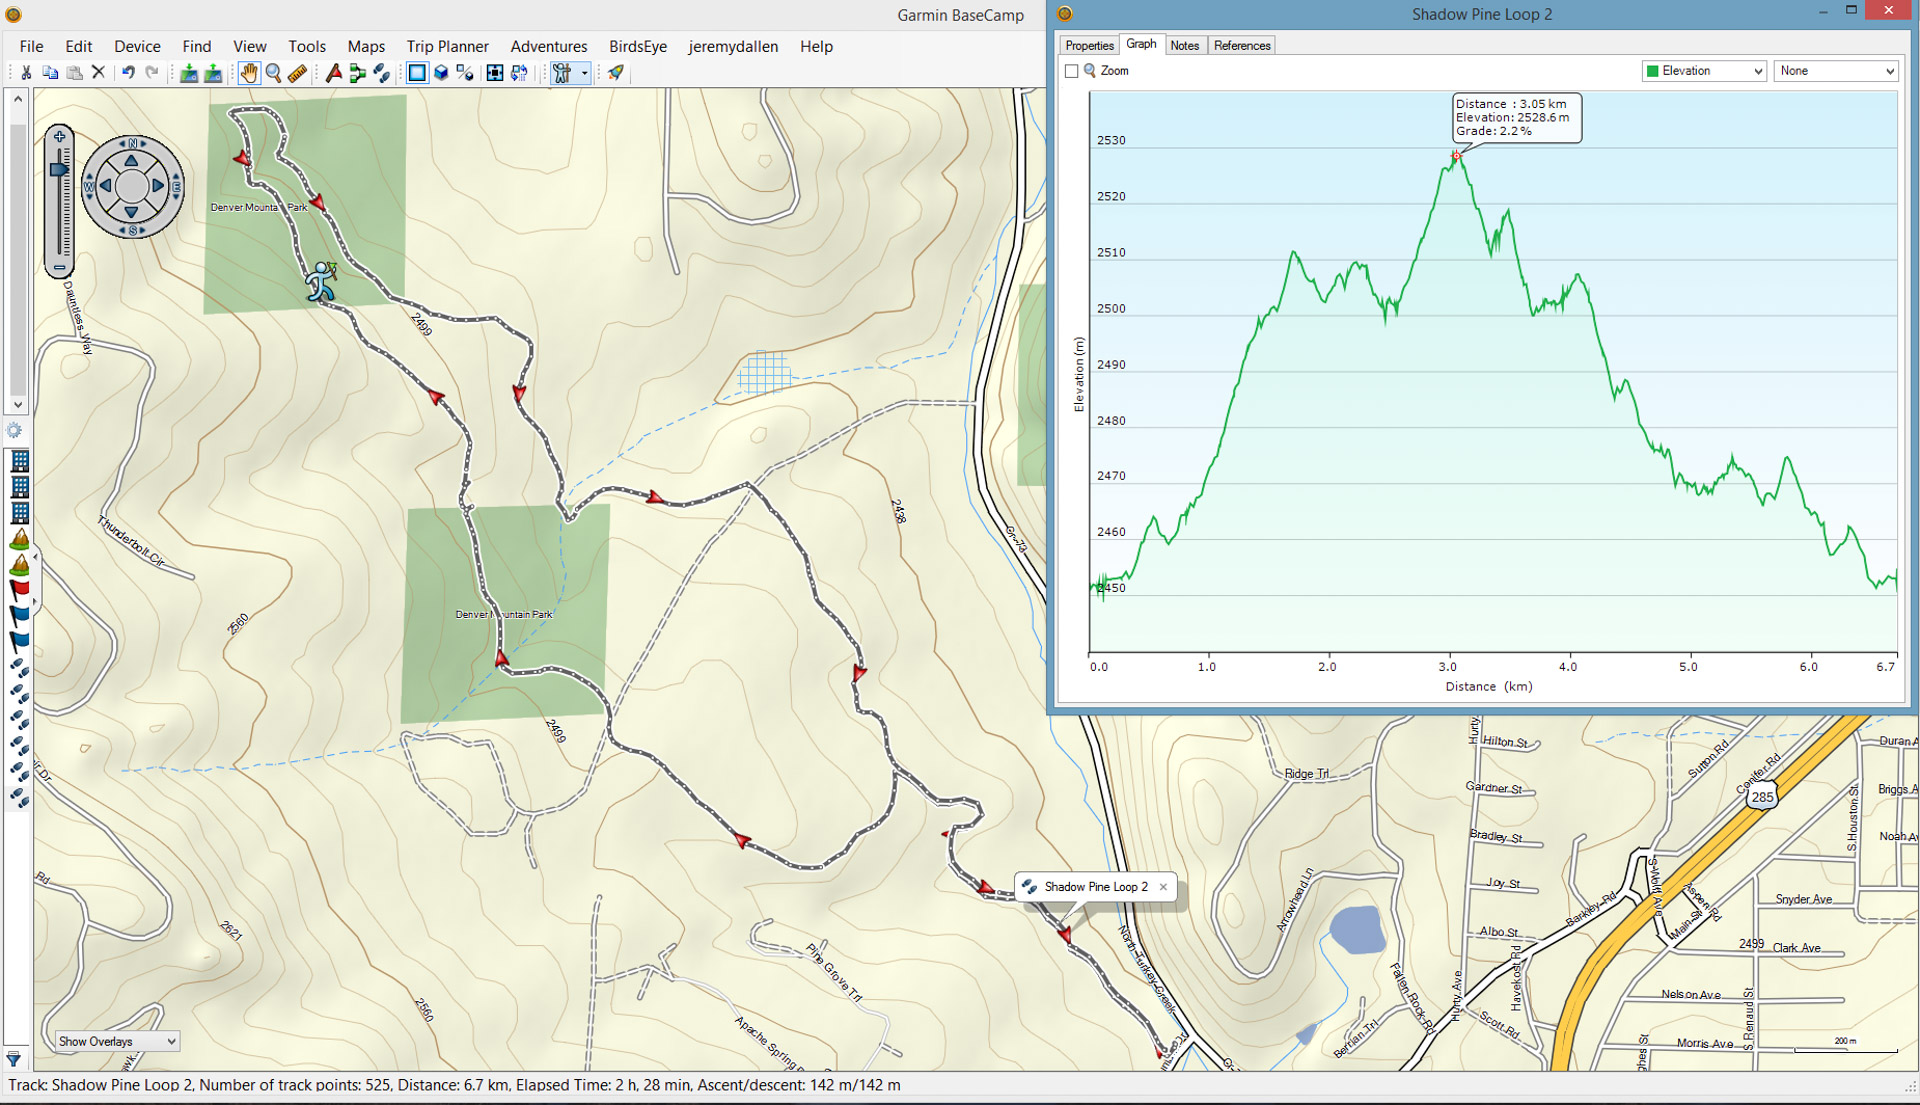 Screen capture of the Shadow Pine Loop Trail displayed in Garmin's Basecamp software.